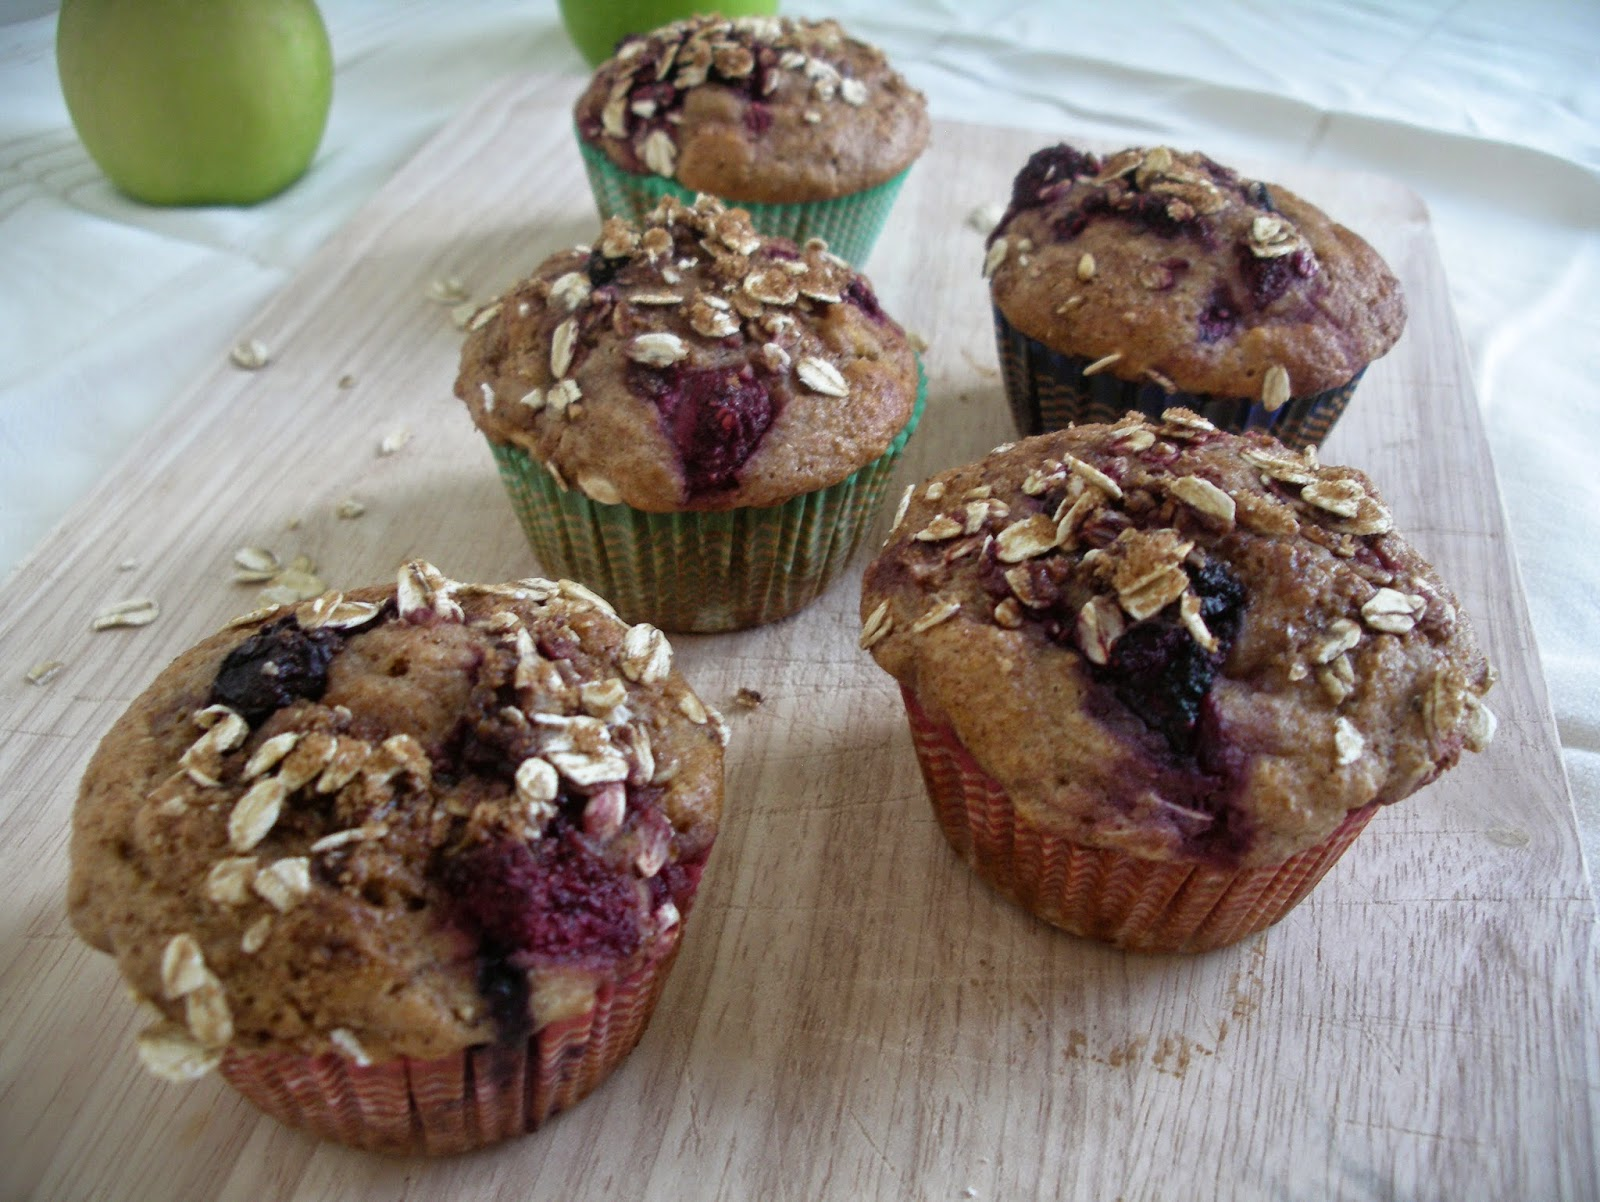 Mixed Berries and Apple Muffins